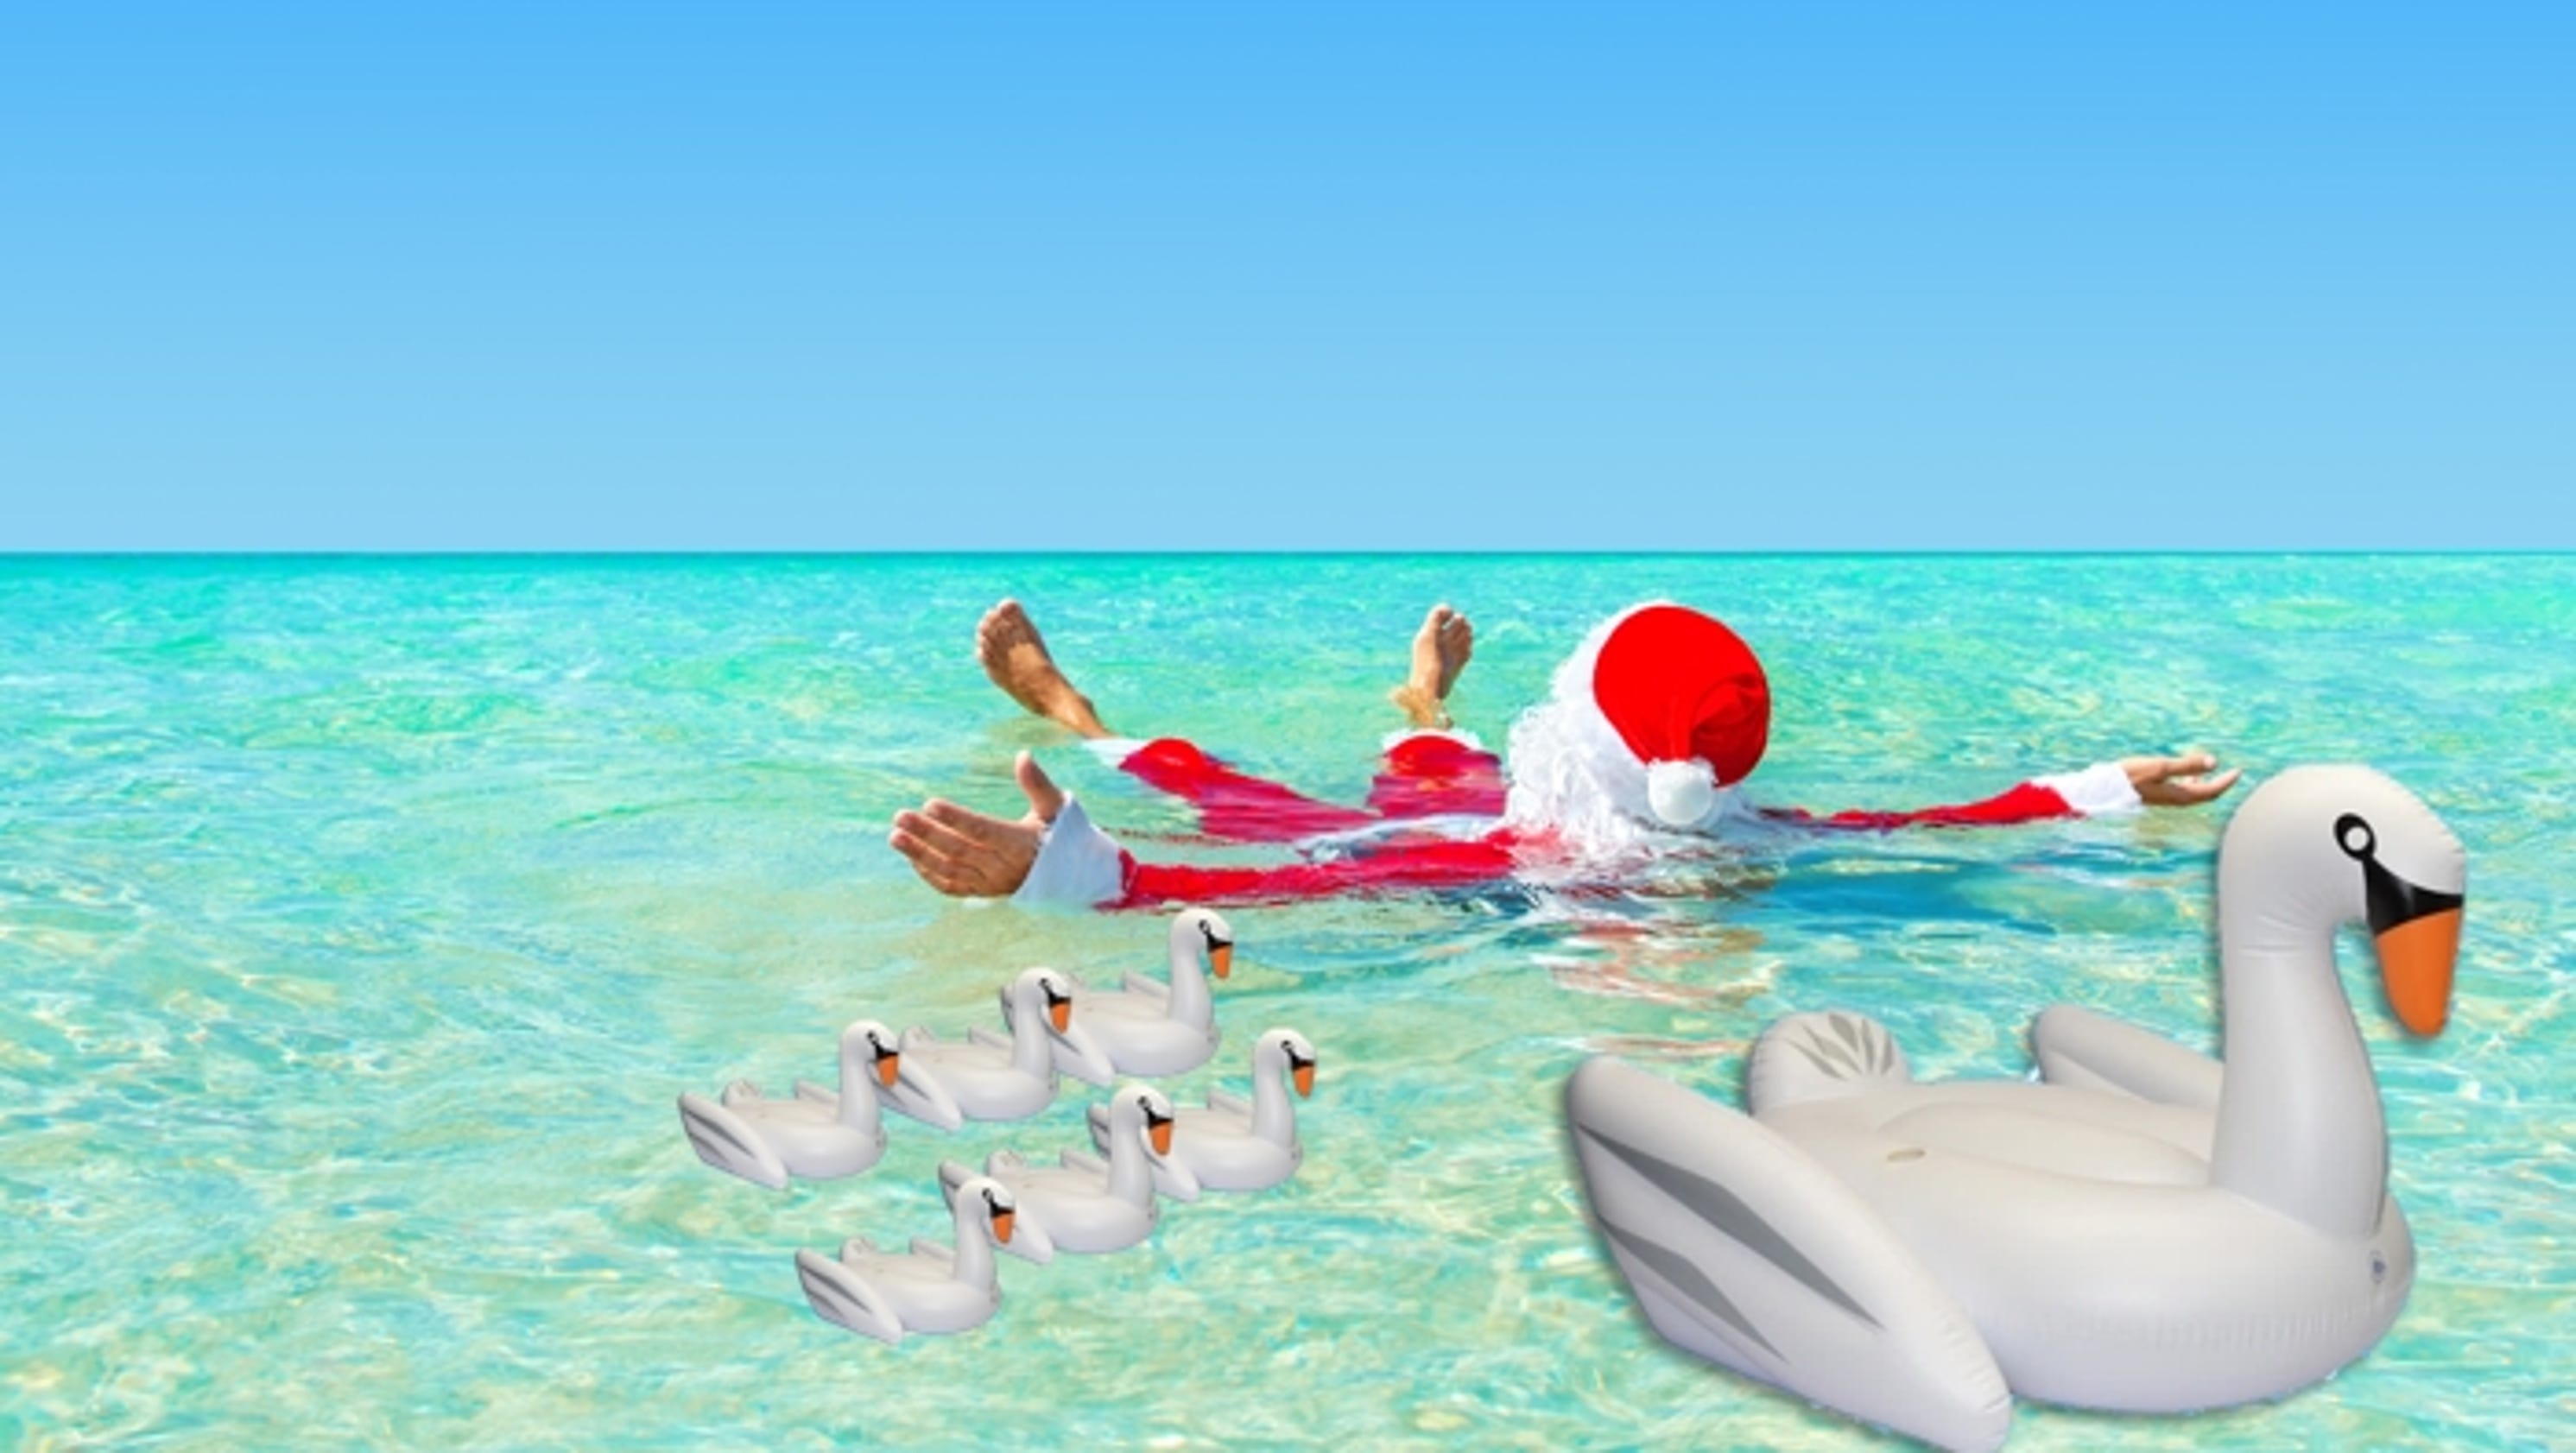 CHRISTMAS IN JULY: 7 Swans a Swimming